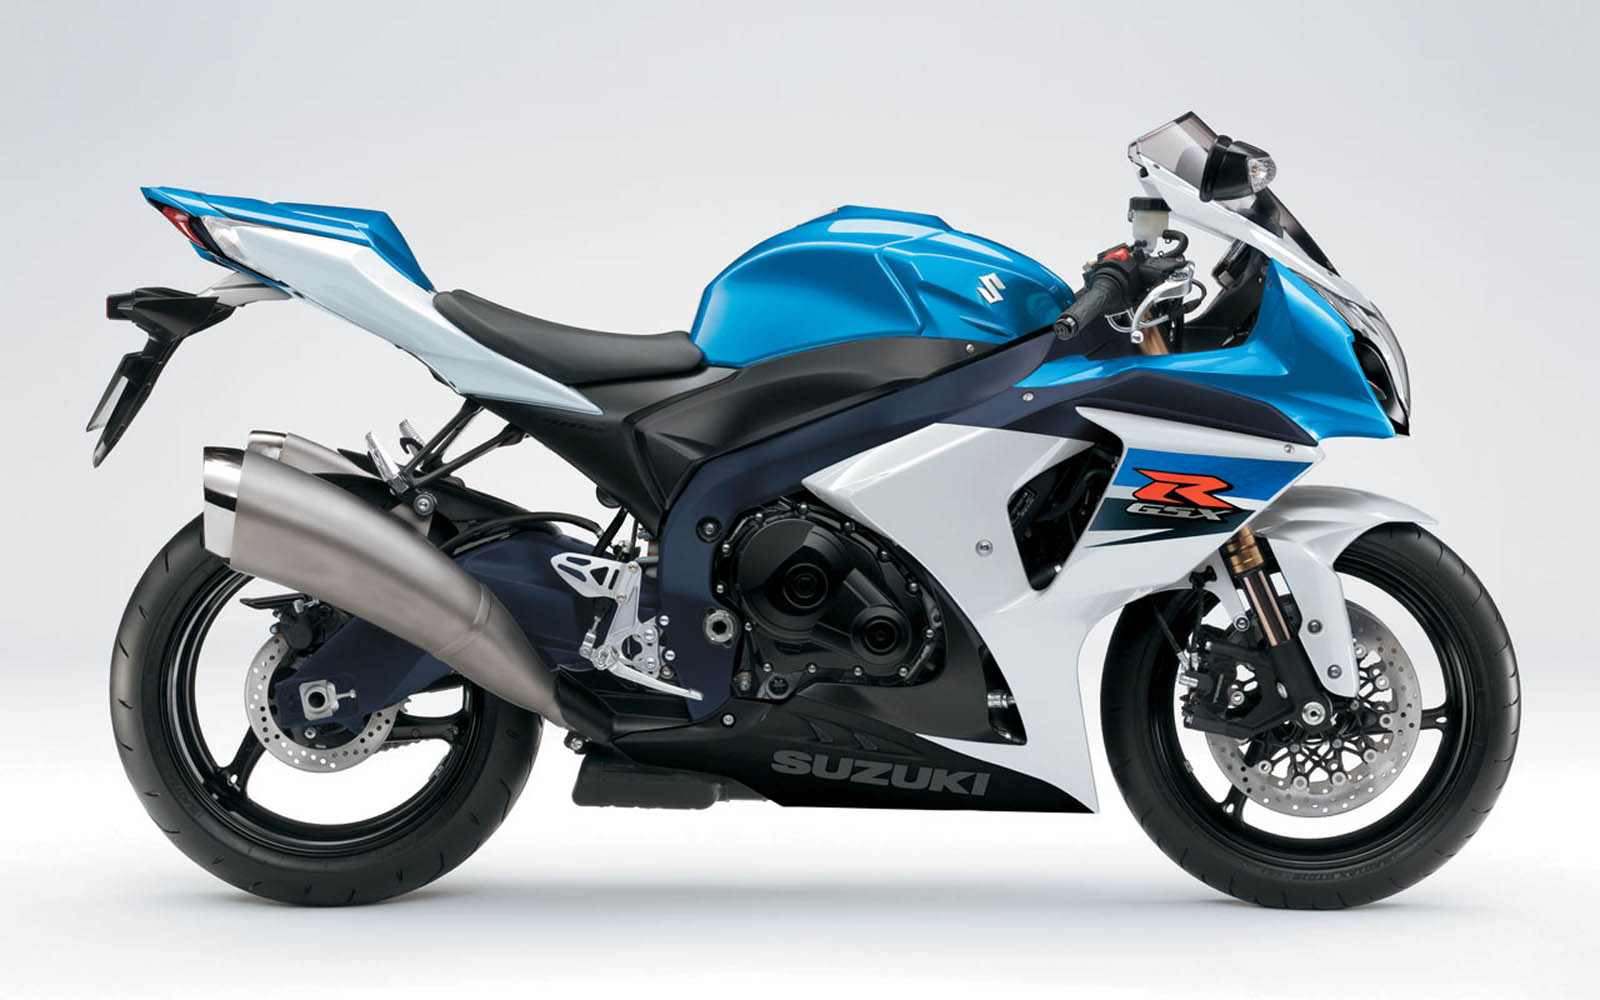 wallpapers suzuki gsx r1000 bike wallpapers. Black Bedroom Furniture Sets. Home Design Ideas